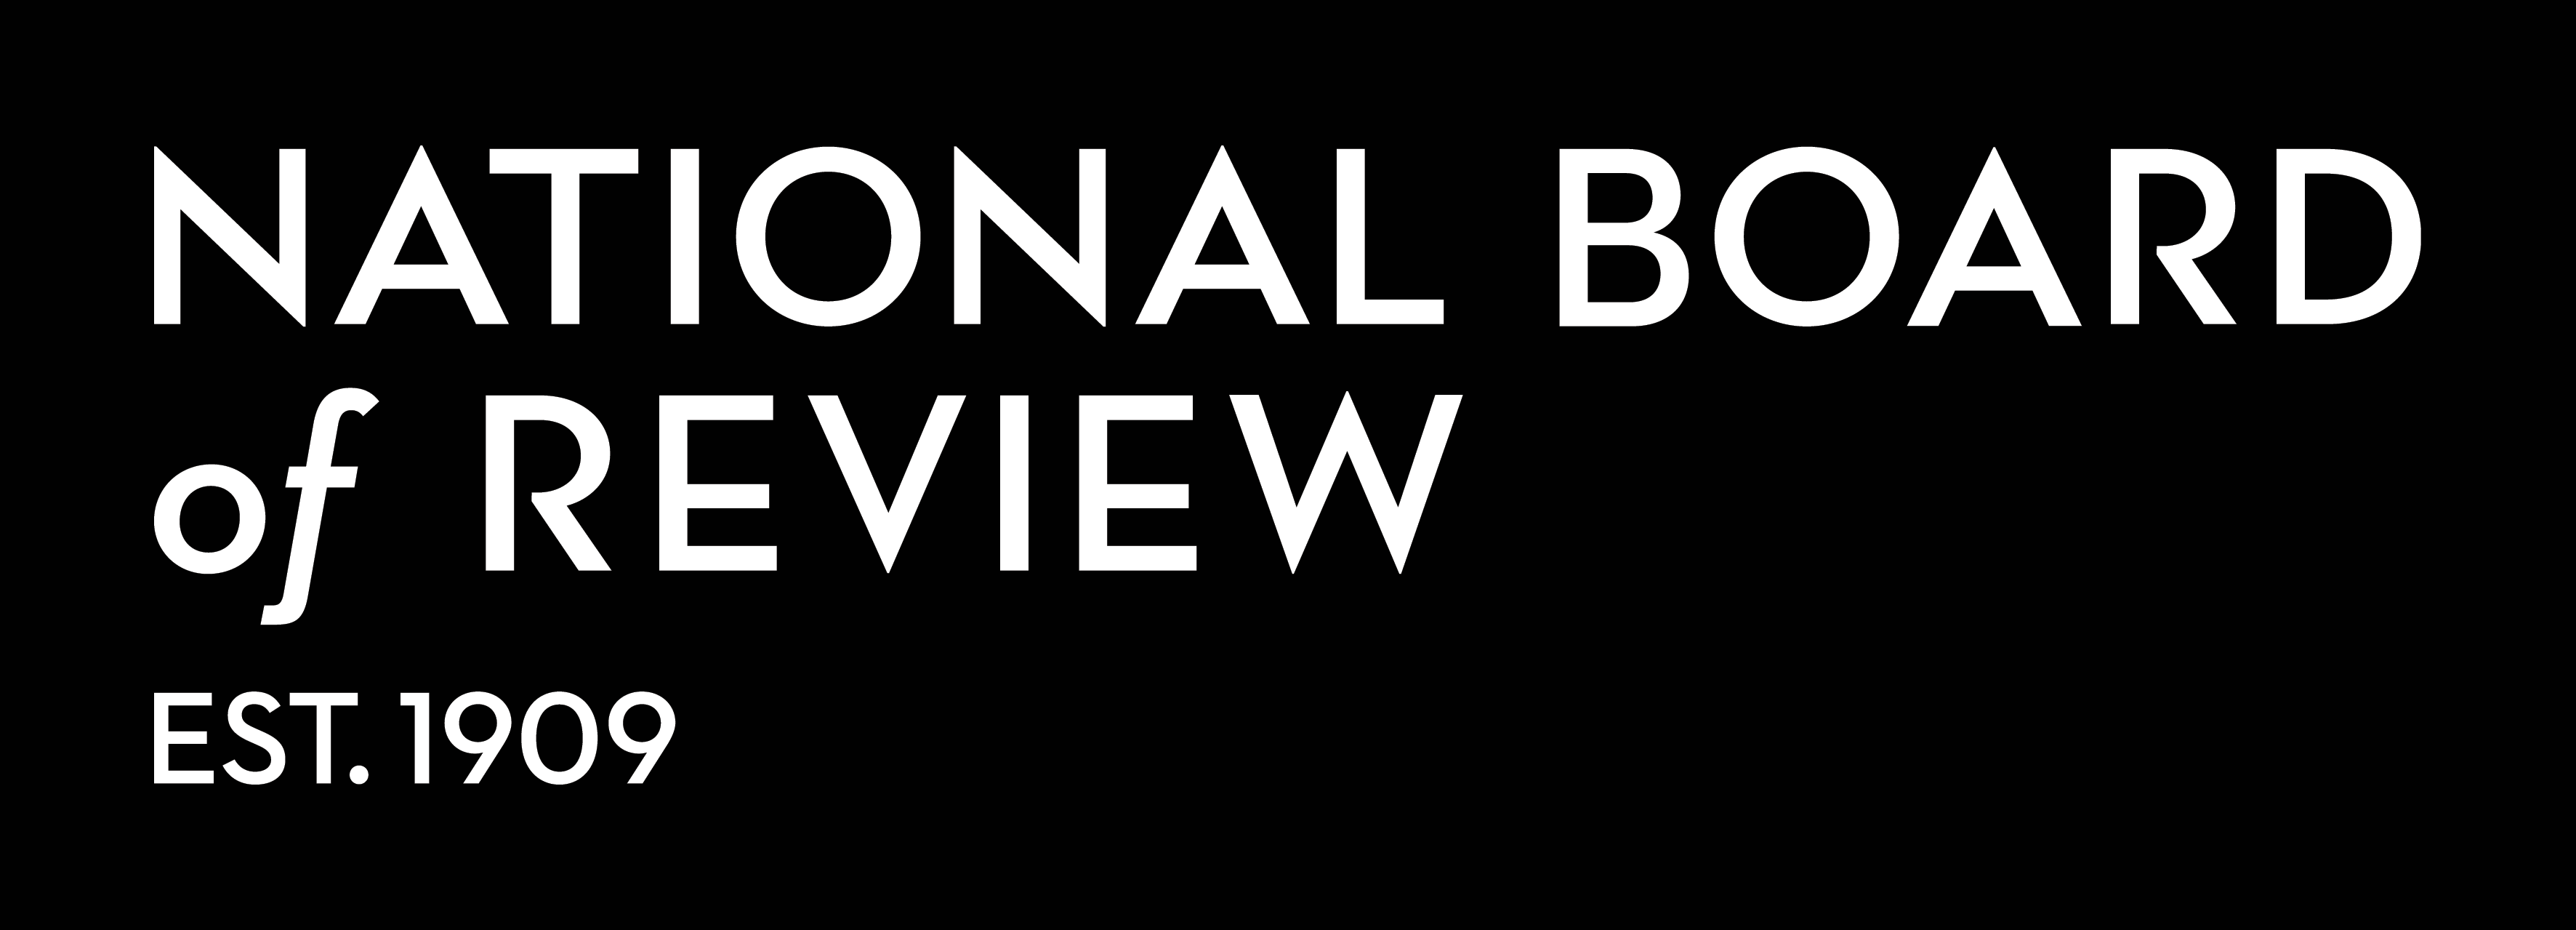 The_National_Board_of_Review_Logo